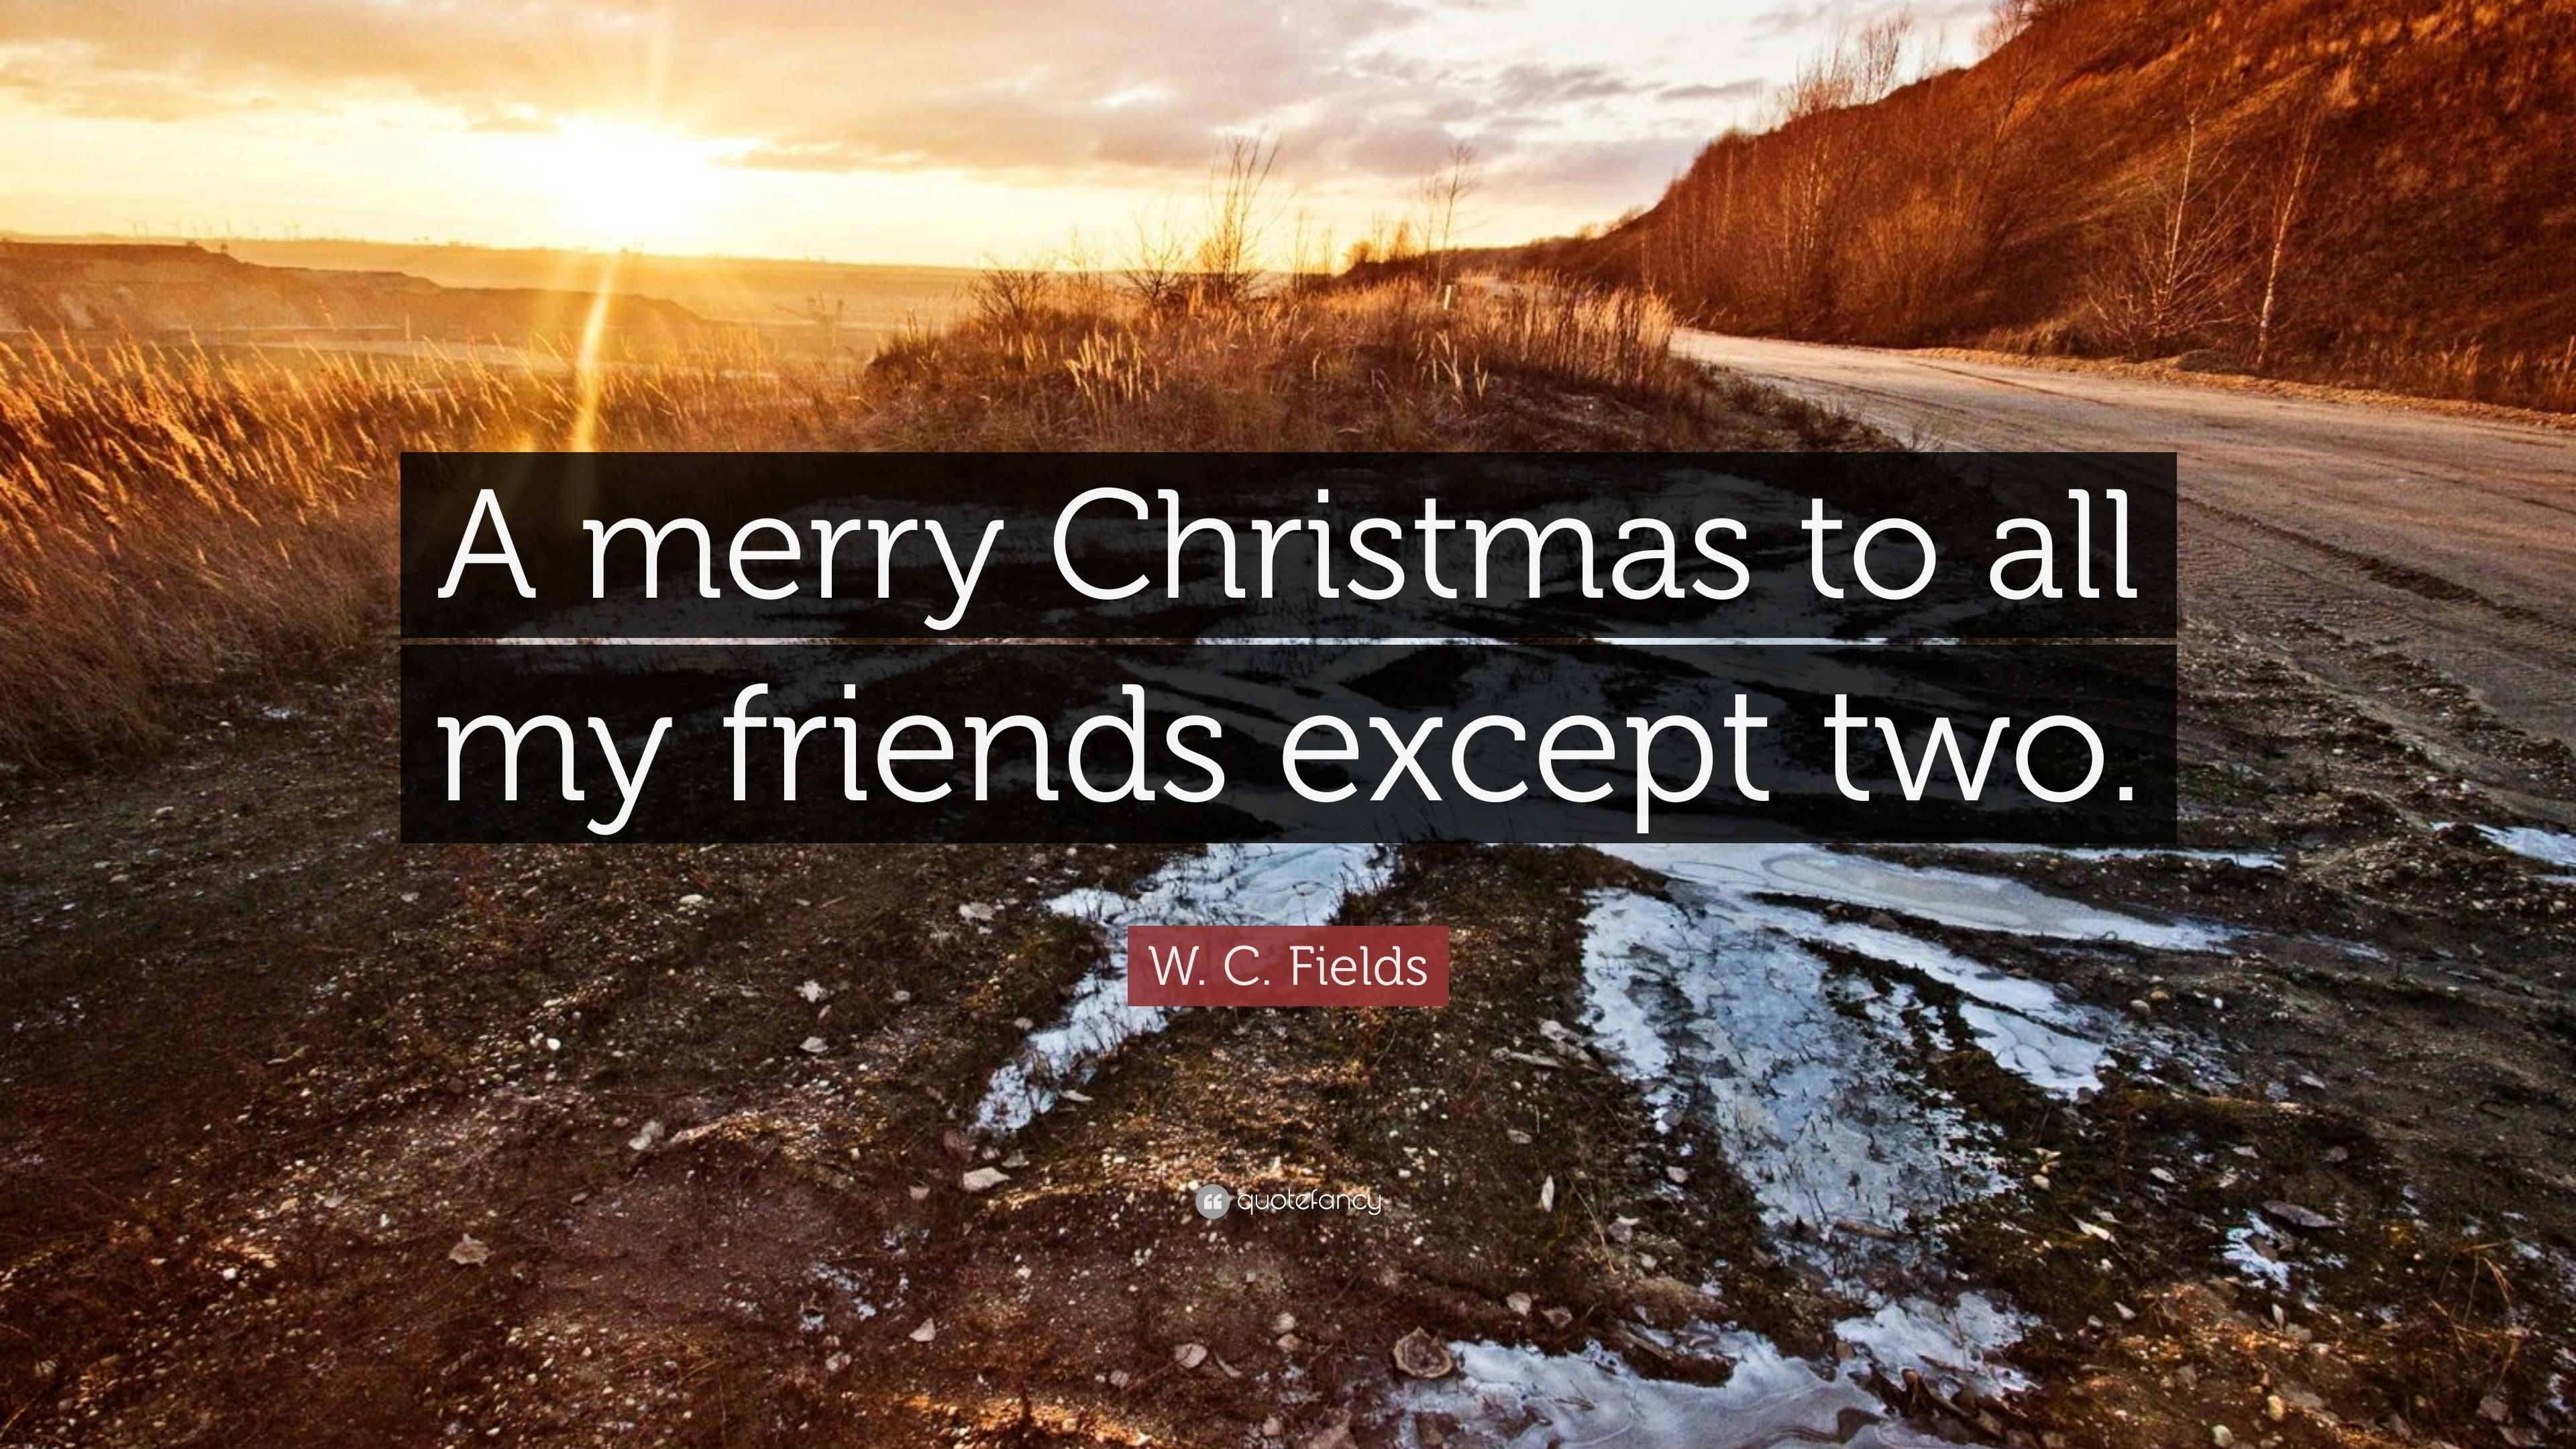 Fields Quote Merry Christmas All Friends